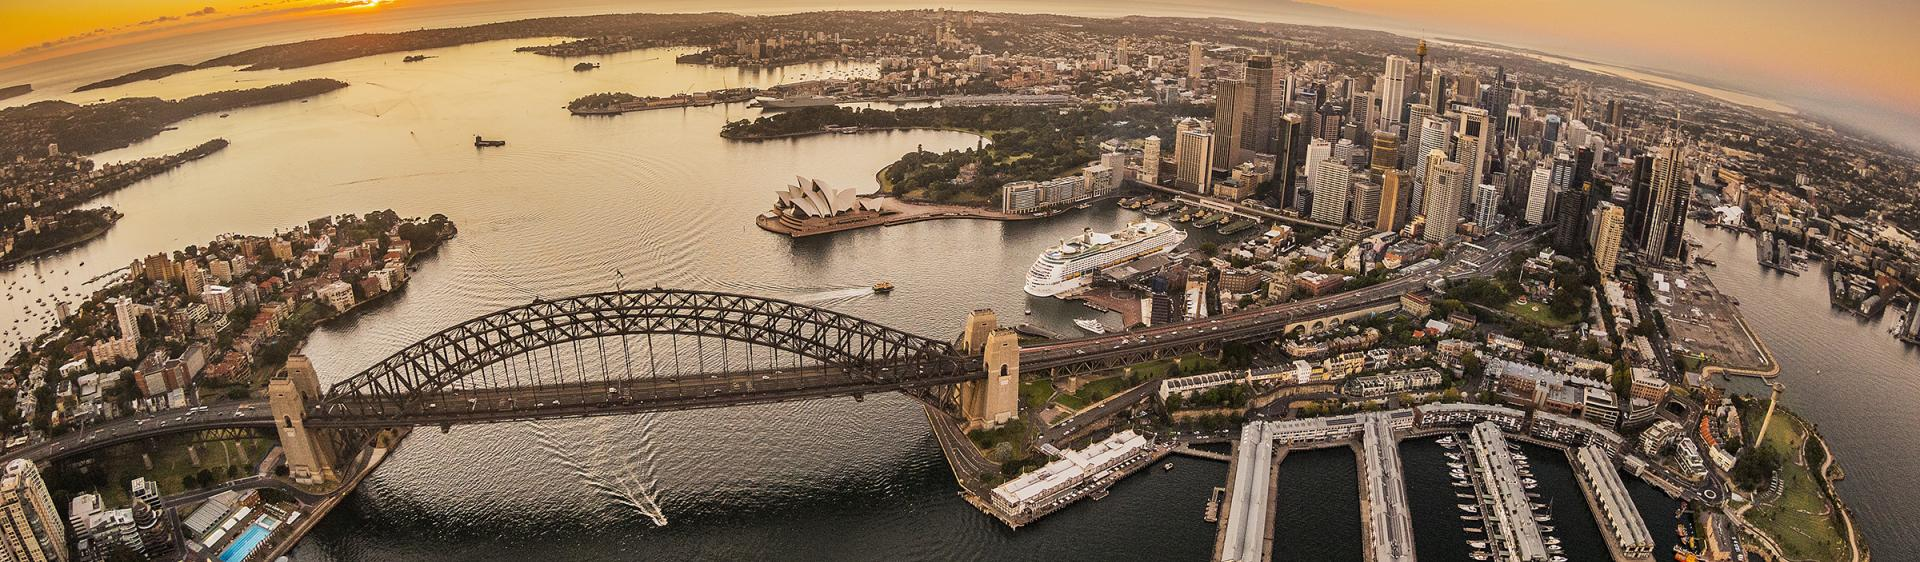 Aerial of the sun rising over Sydney Harbour with views of the Sydney Harbour Bridge, the CBD and Walsh Bay